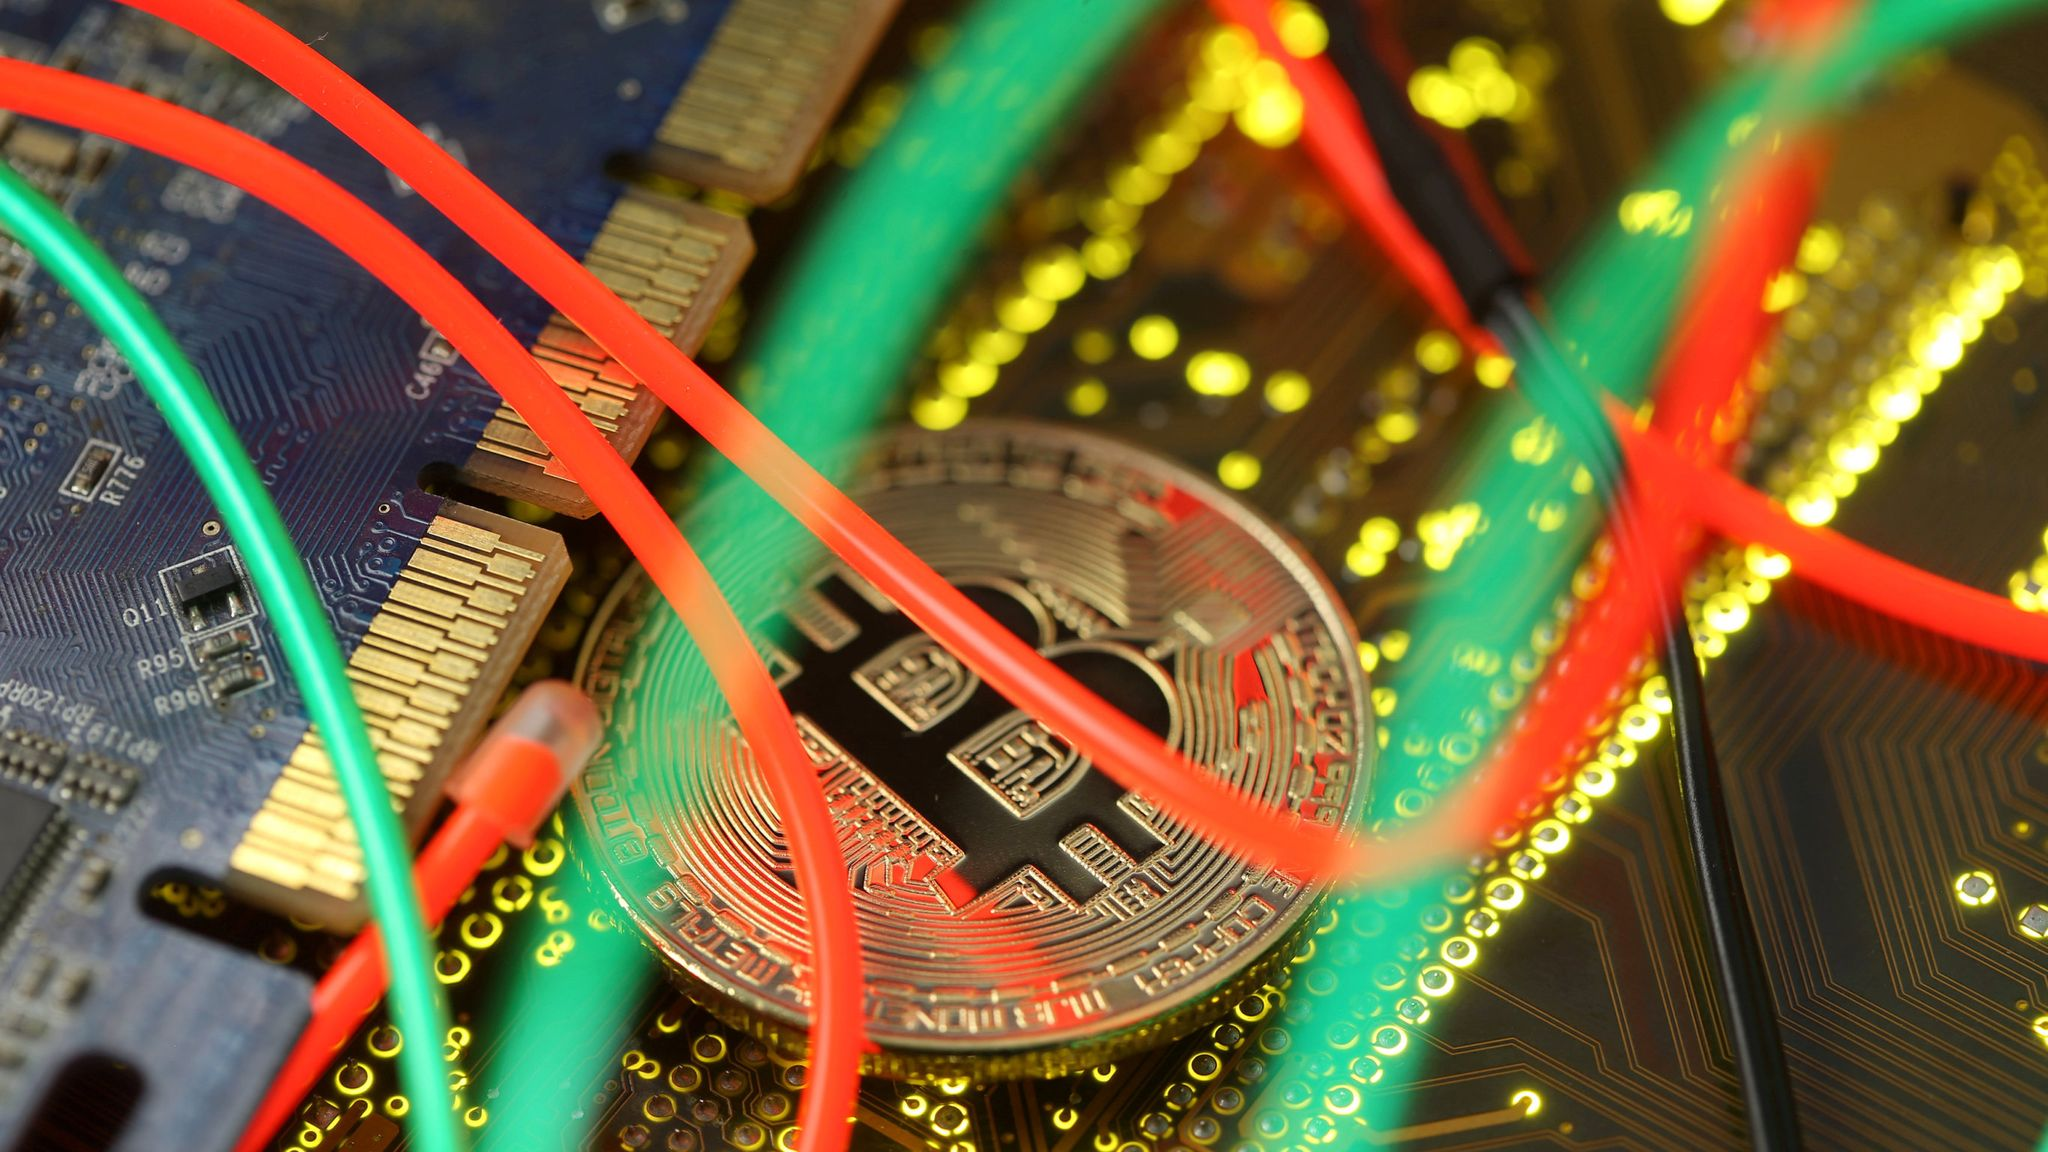 Bitcoin price nears record highs - almost three years after it hit $20,000 and suddenly collapsed